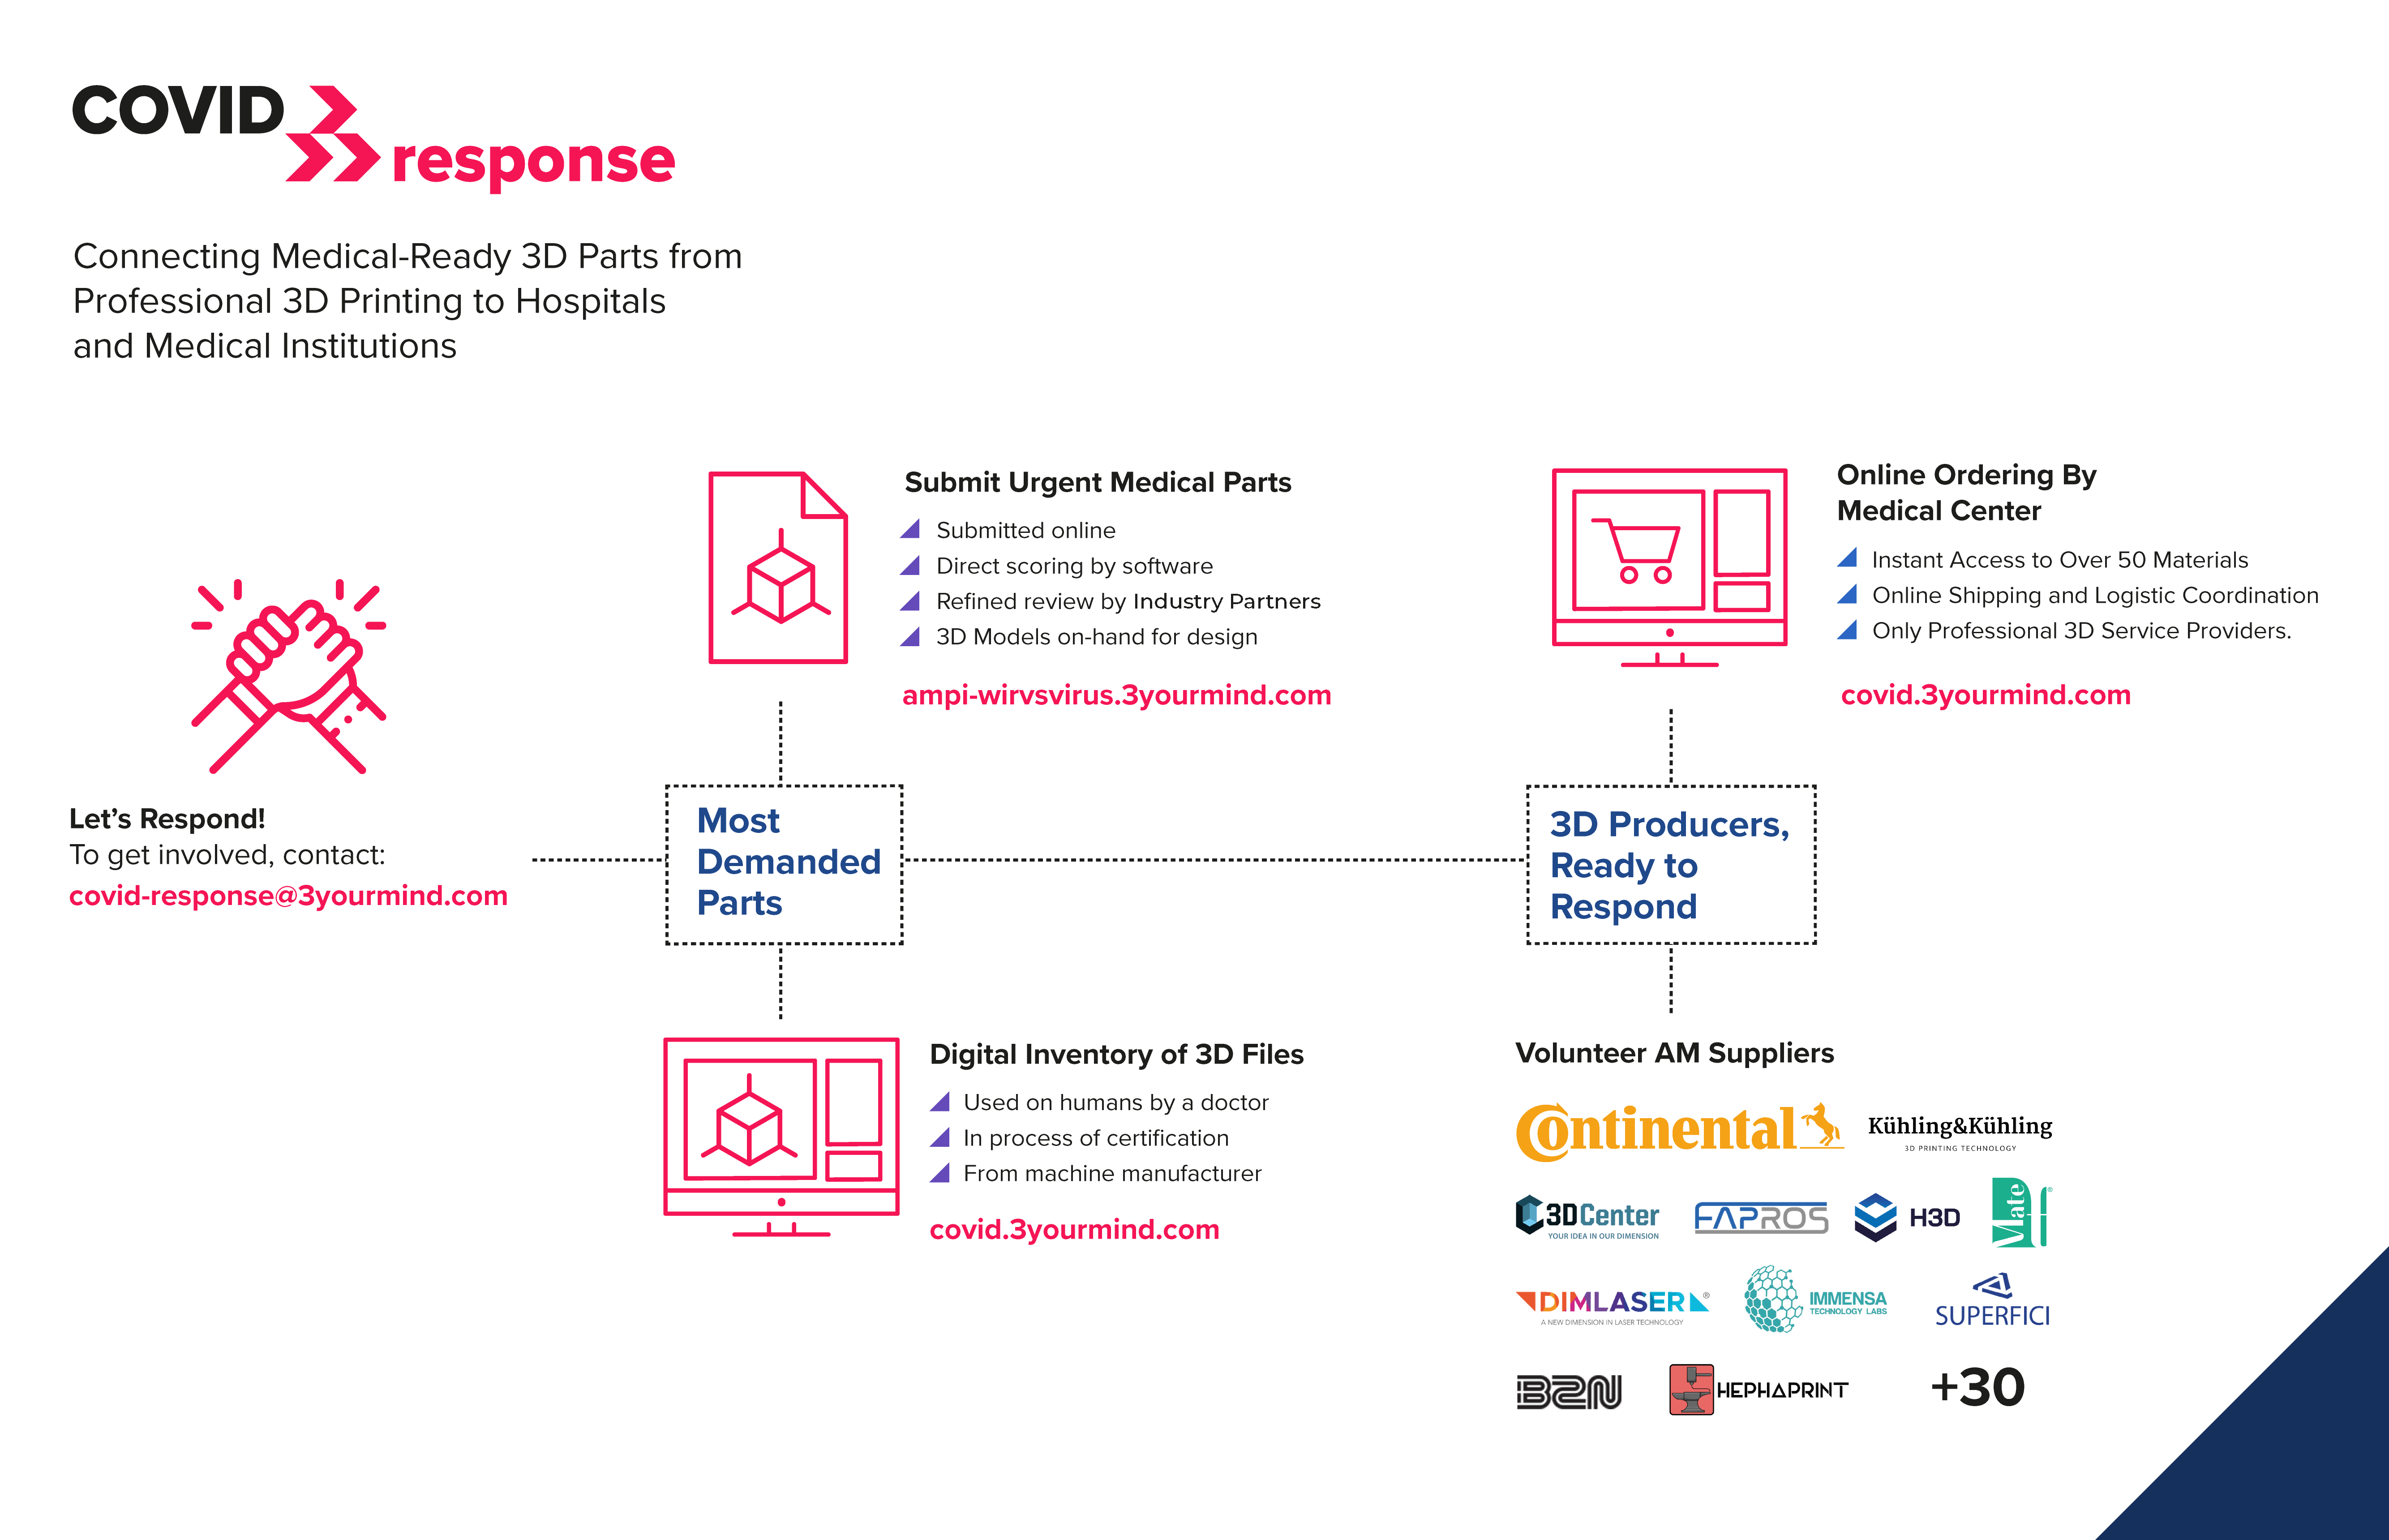 3YOURMIND infographic showing summary of the project. Image via 3YOURMIND